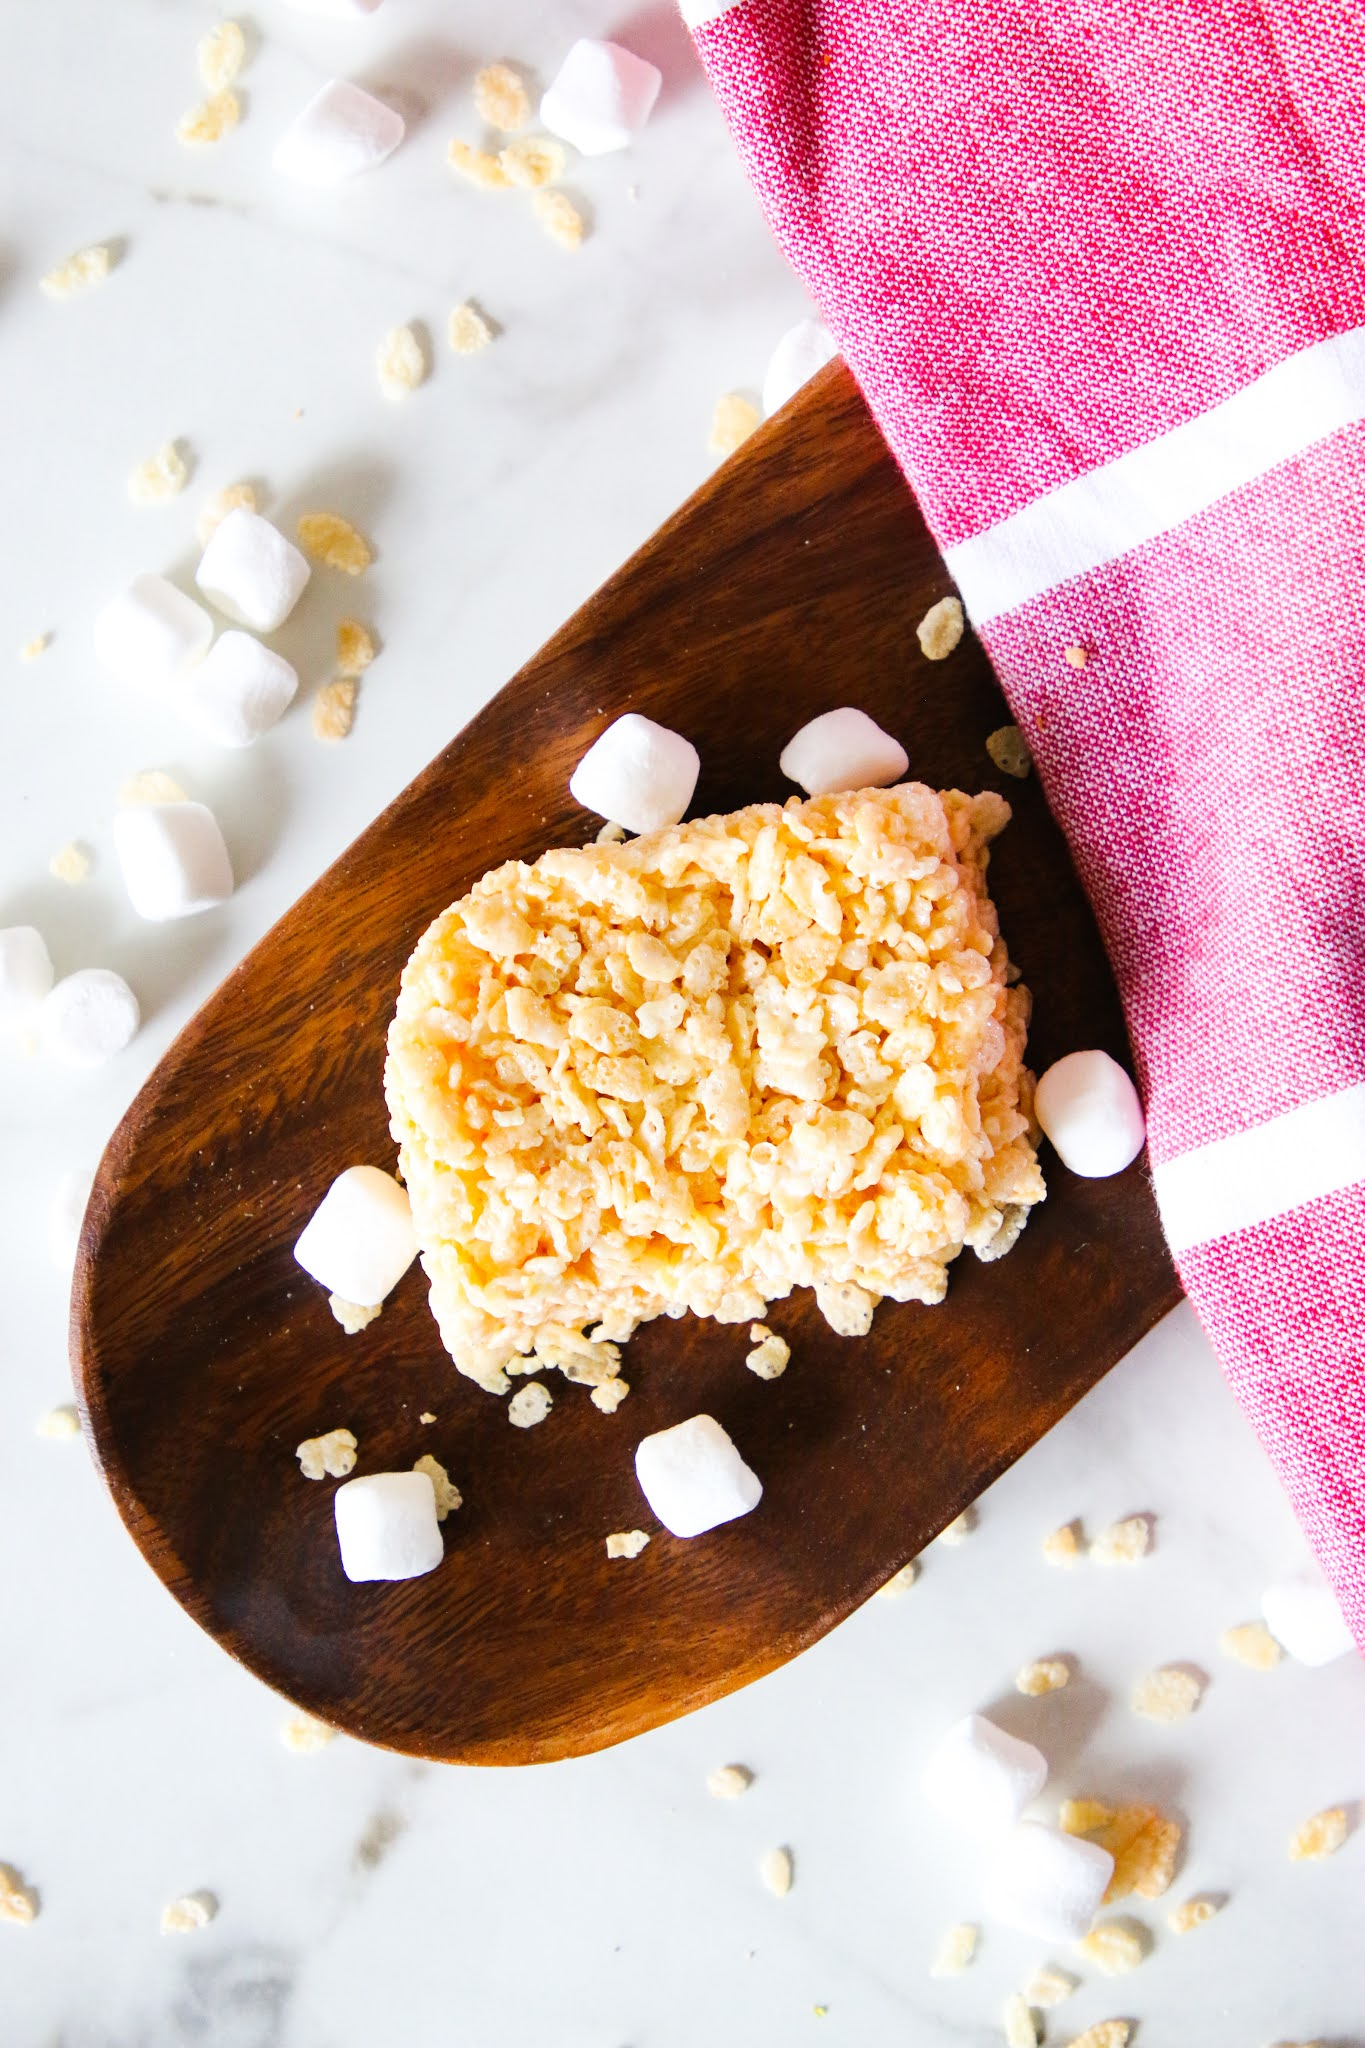 Rice krispie treat on a wood platter with a red dish towel with rice krispies and marshmallows scattered on the table